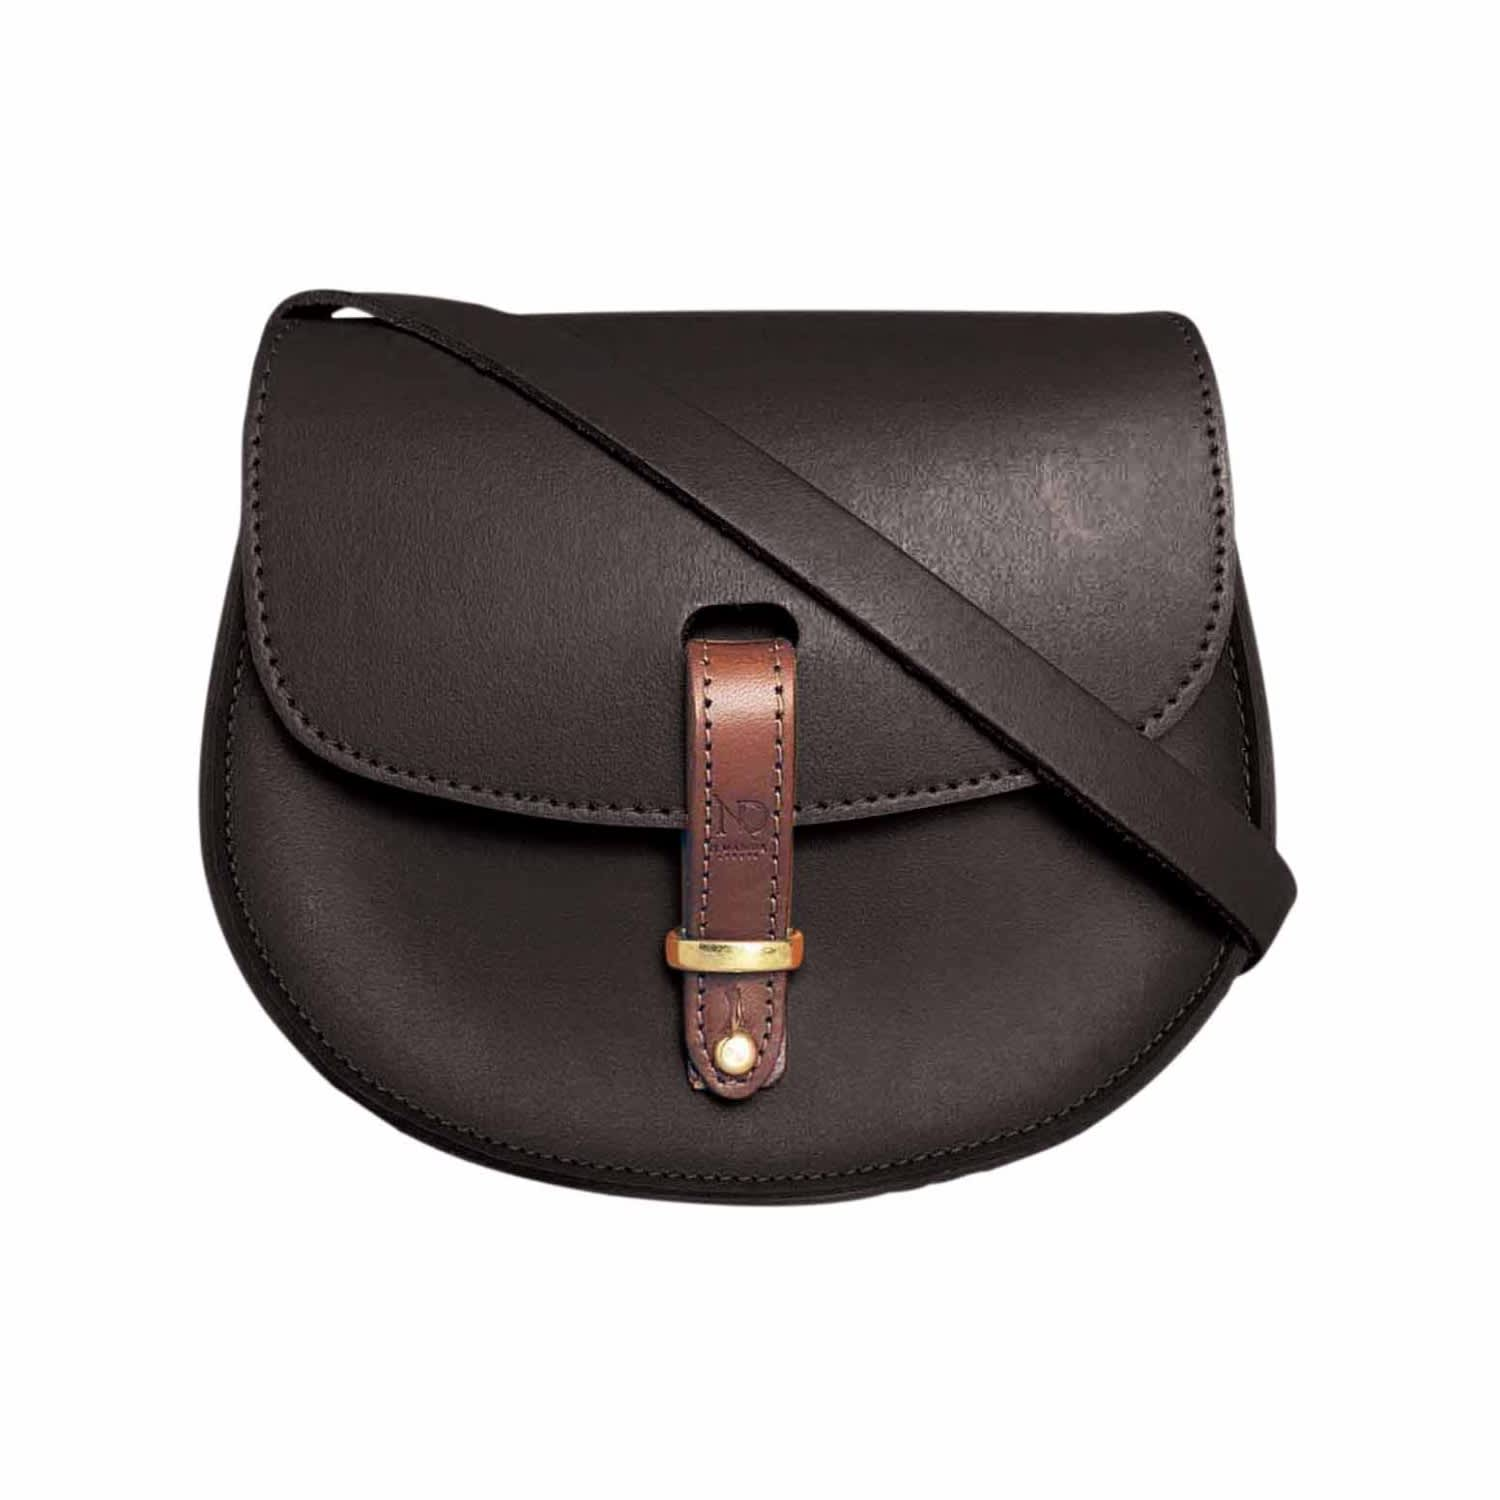 elegant and sturdy package shop for official agreatvarietyofmodels Mini Victoria Black Leather Crossbody Saddle Bag by N'Damus London